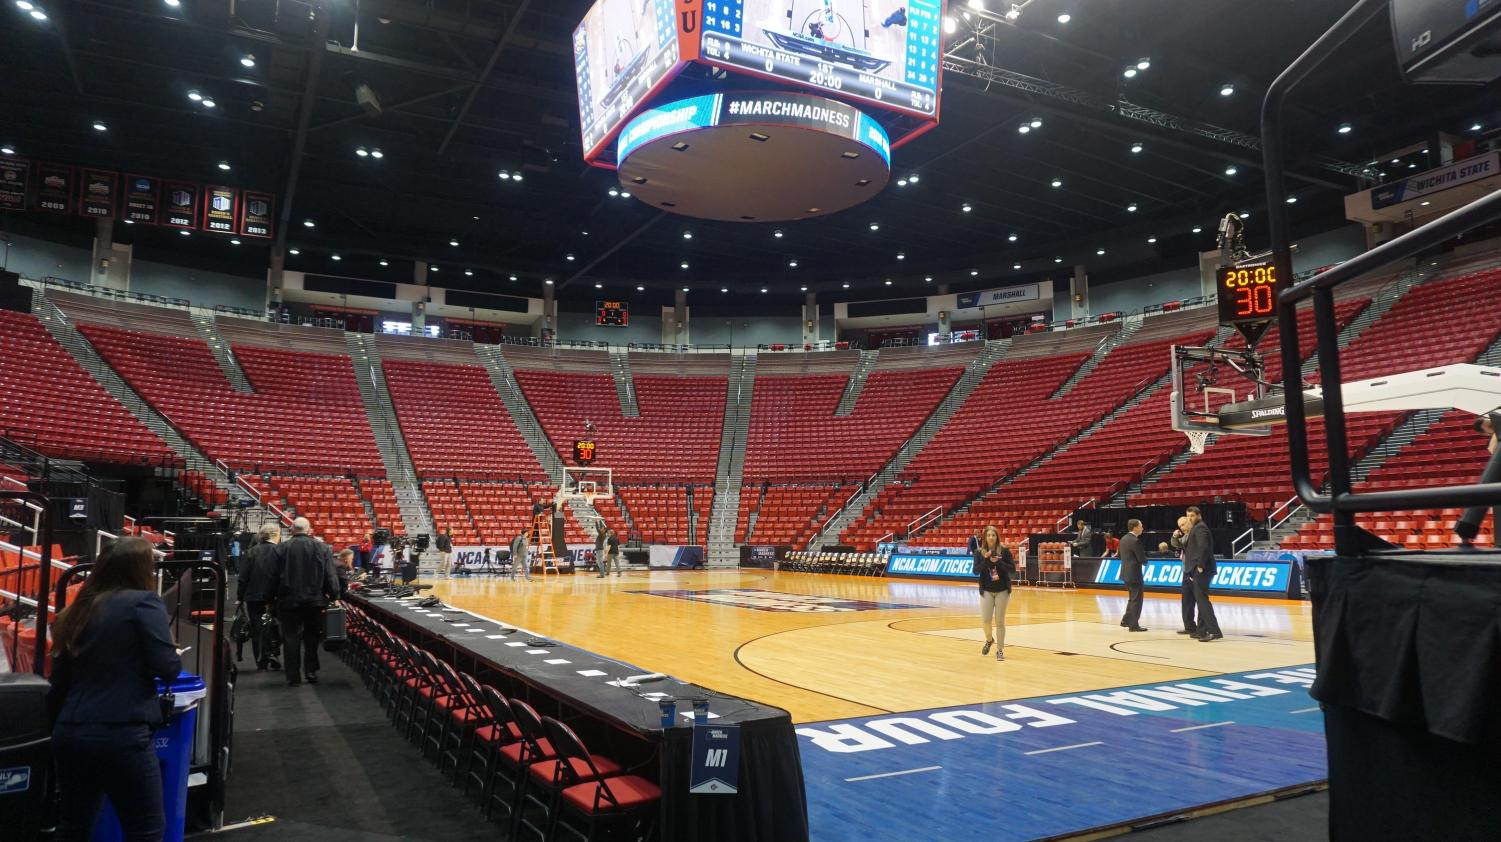 No. 12 New Mexico State vs. No. 5 Clemson will tipoff at 7:57 MT on TruTV.